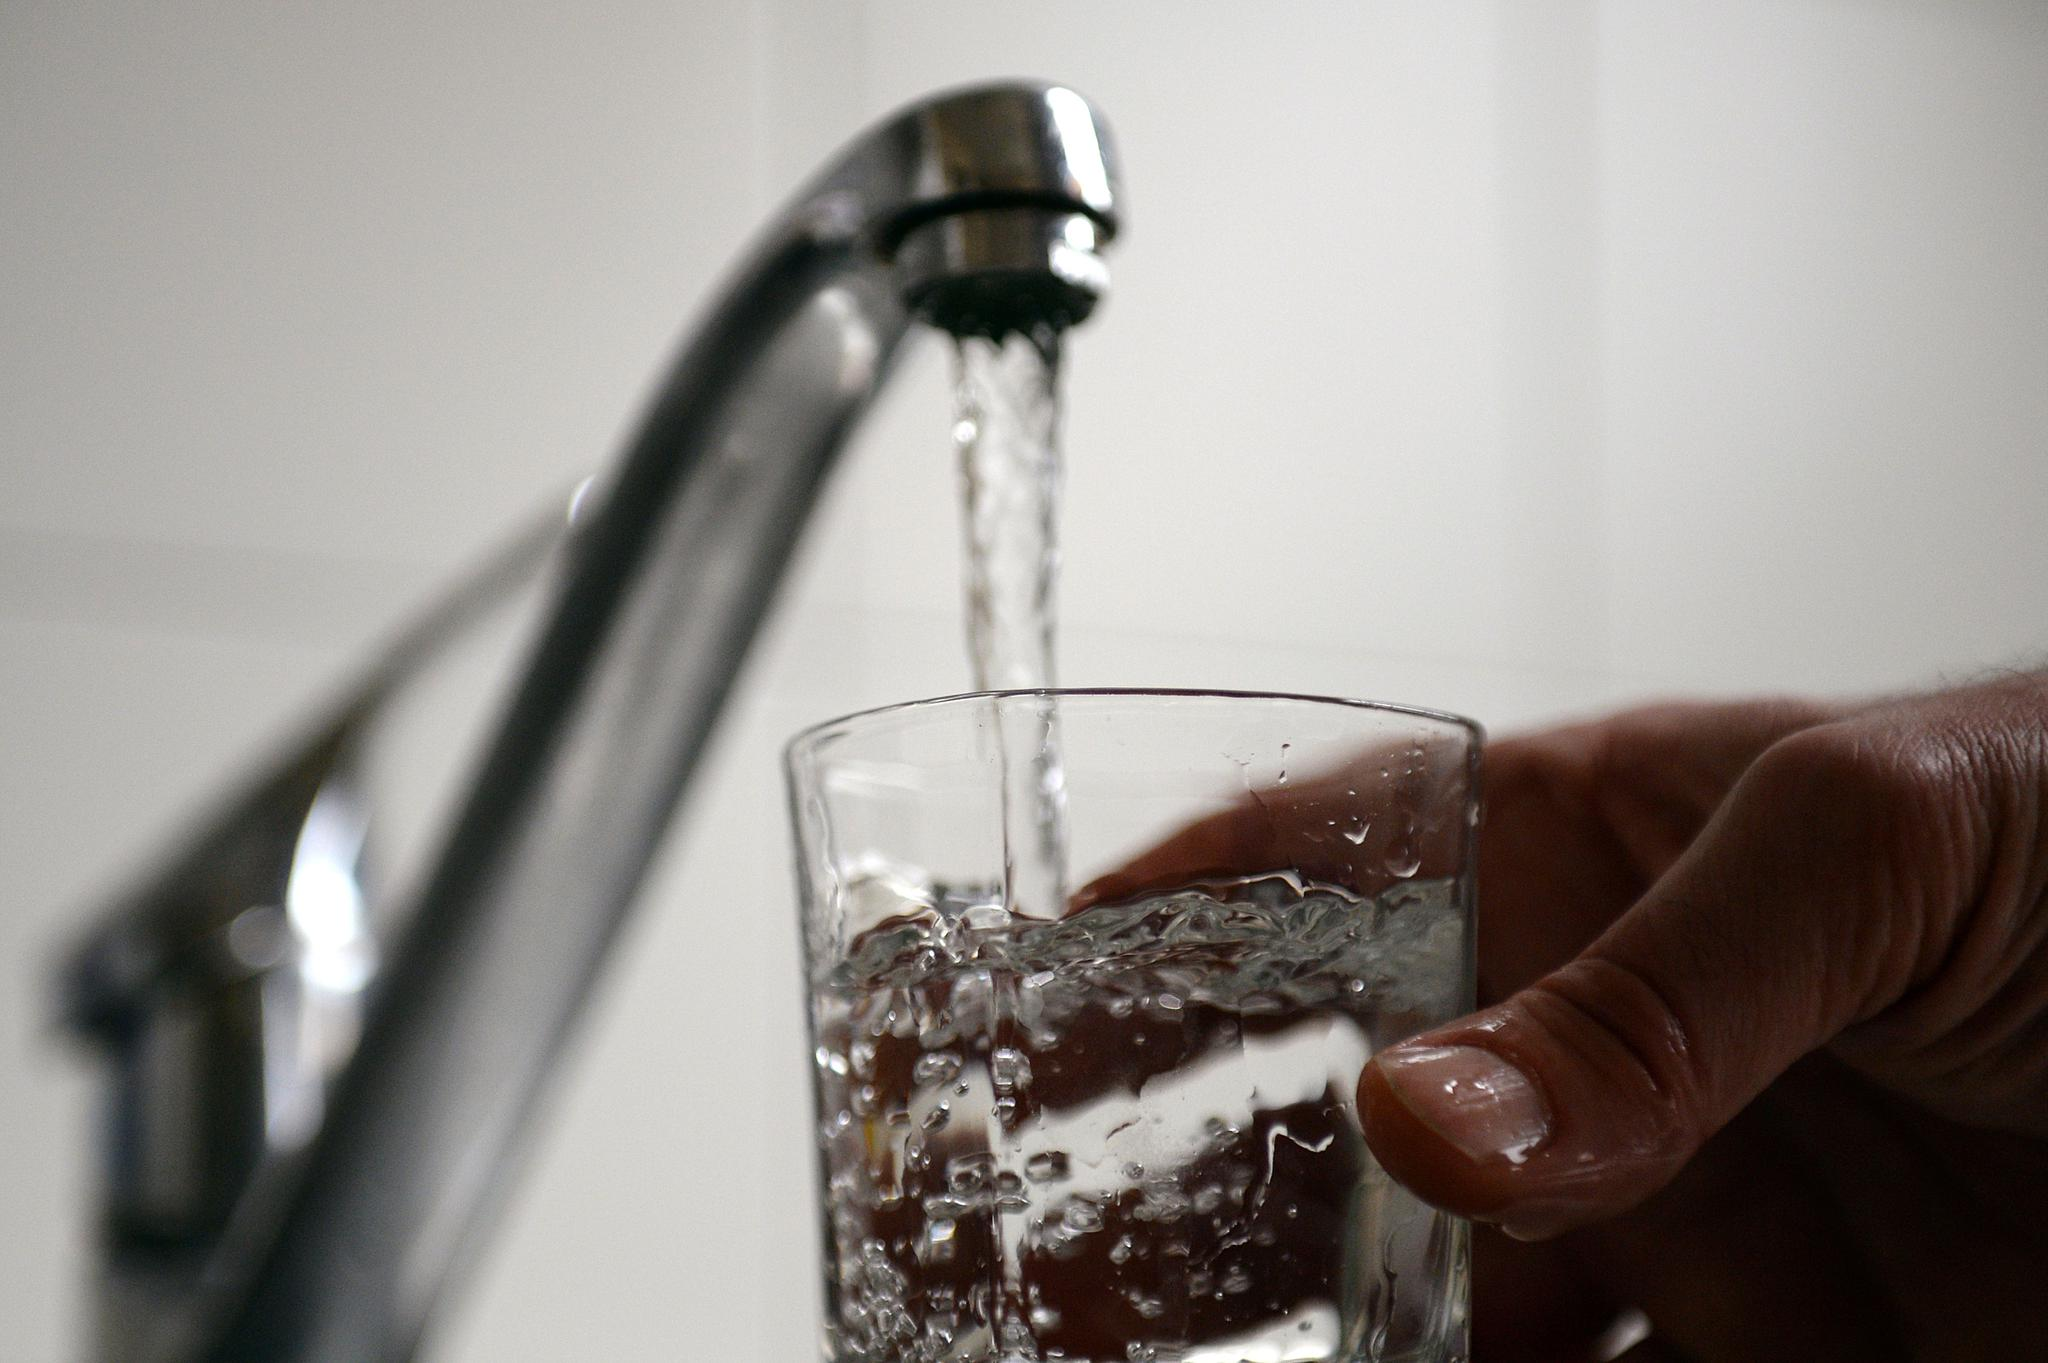 Many drinking water systems across the U.S. contain contaminants that may pose health risks.